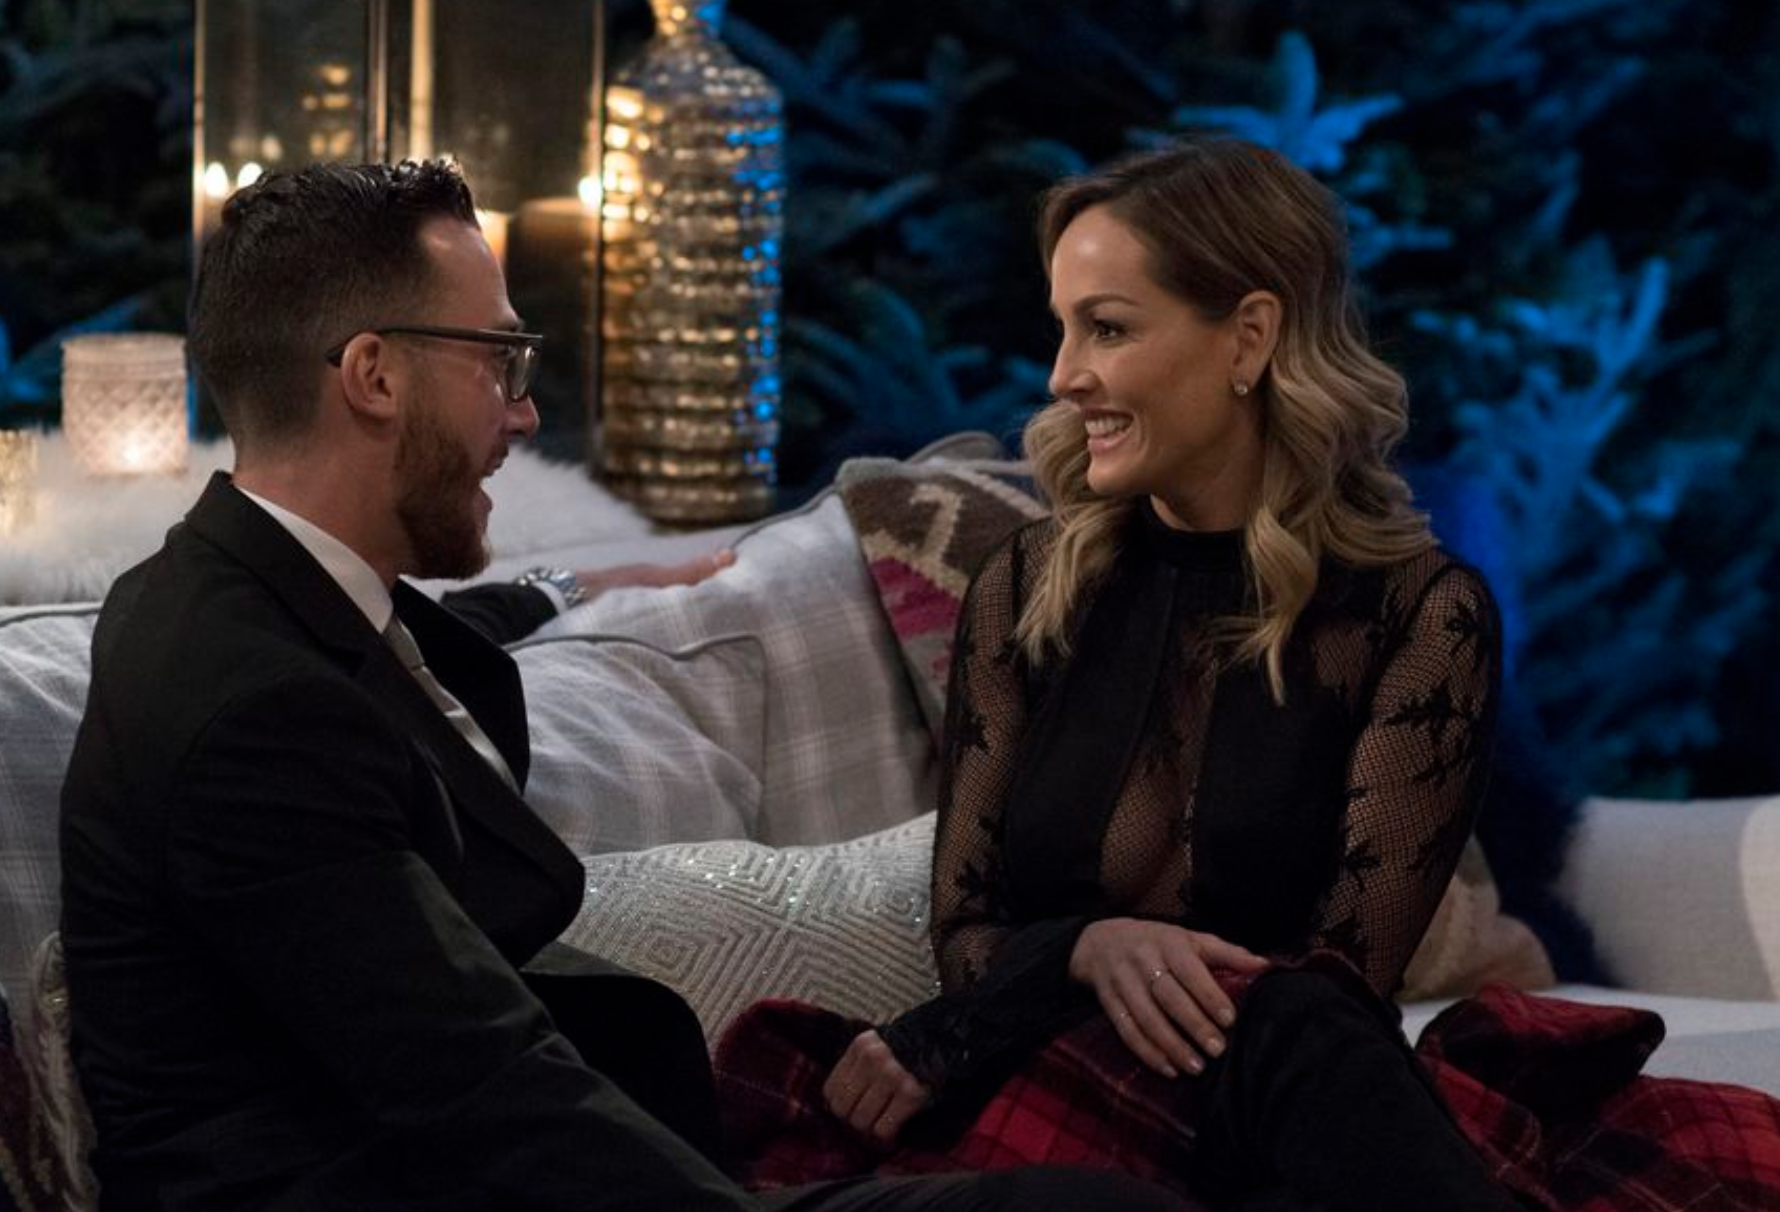 Clare Crawley revealed as the next 'Bachelorette' for 2020 season